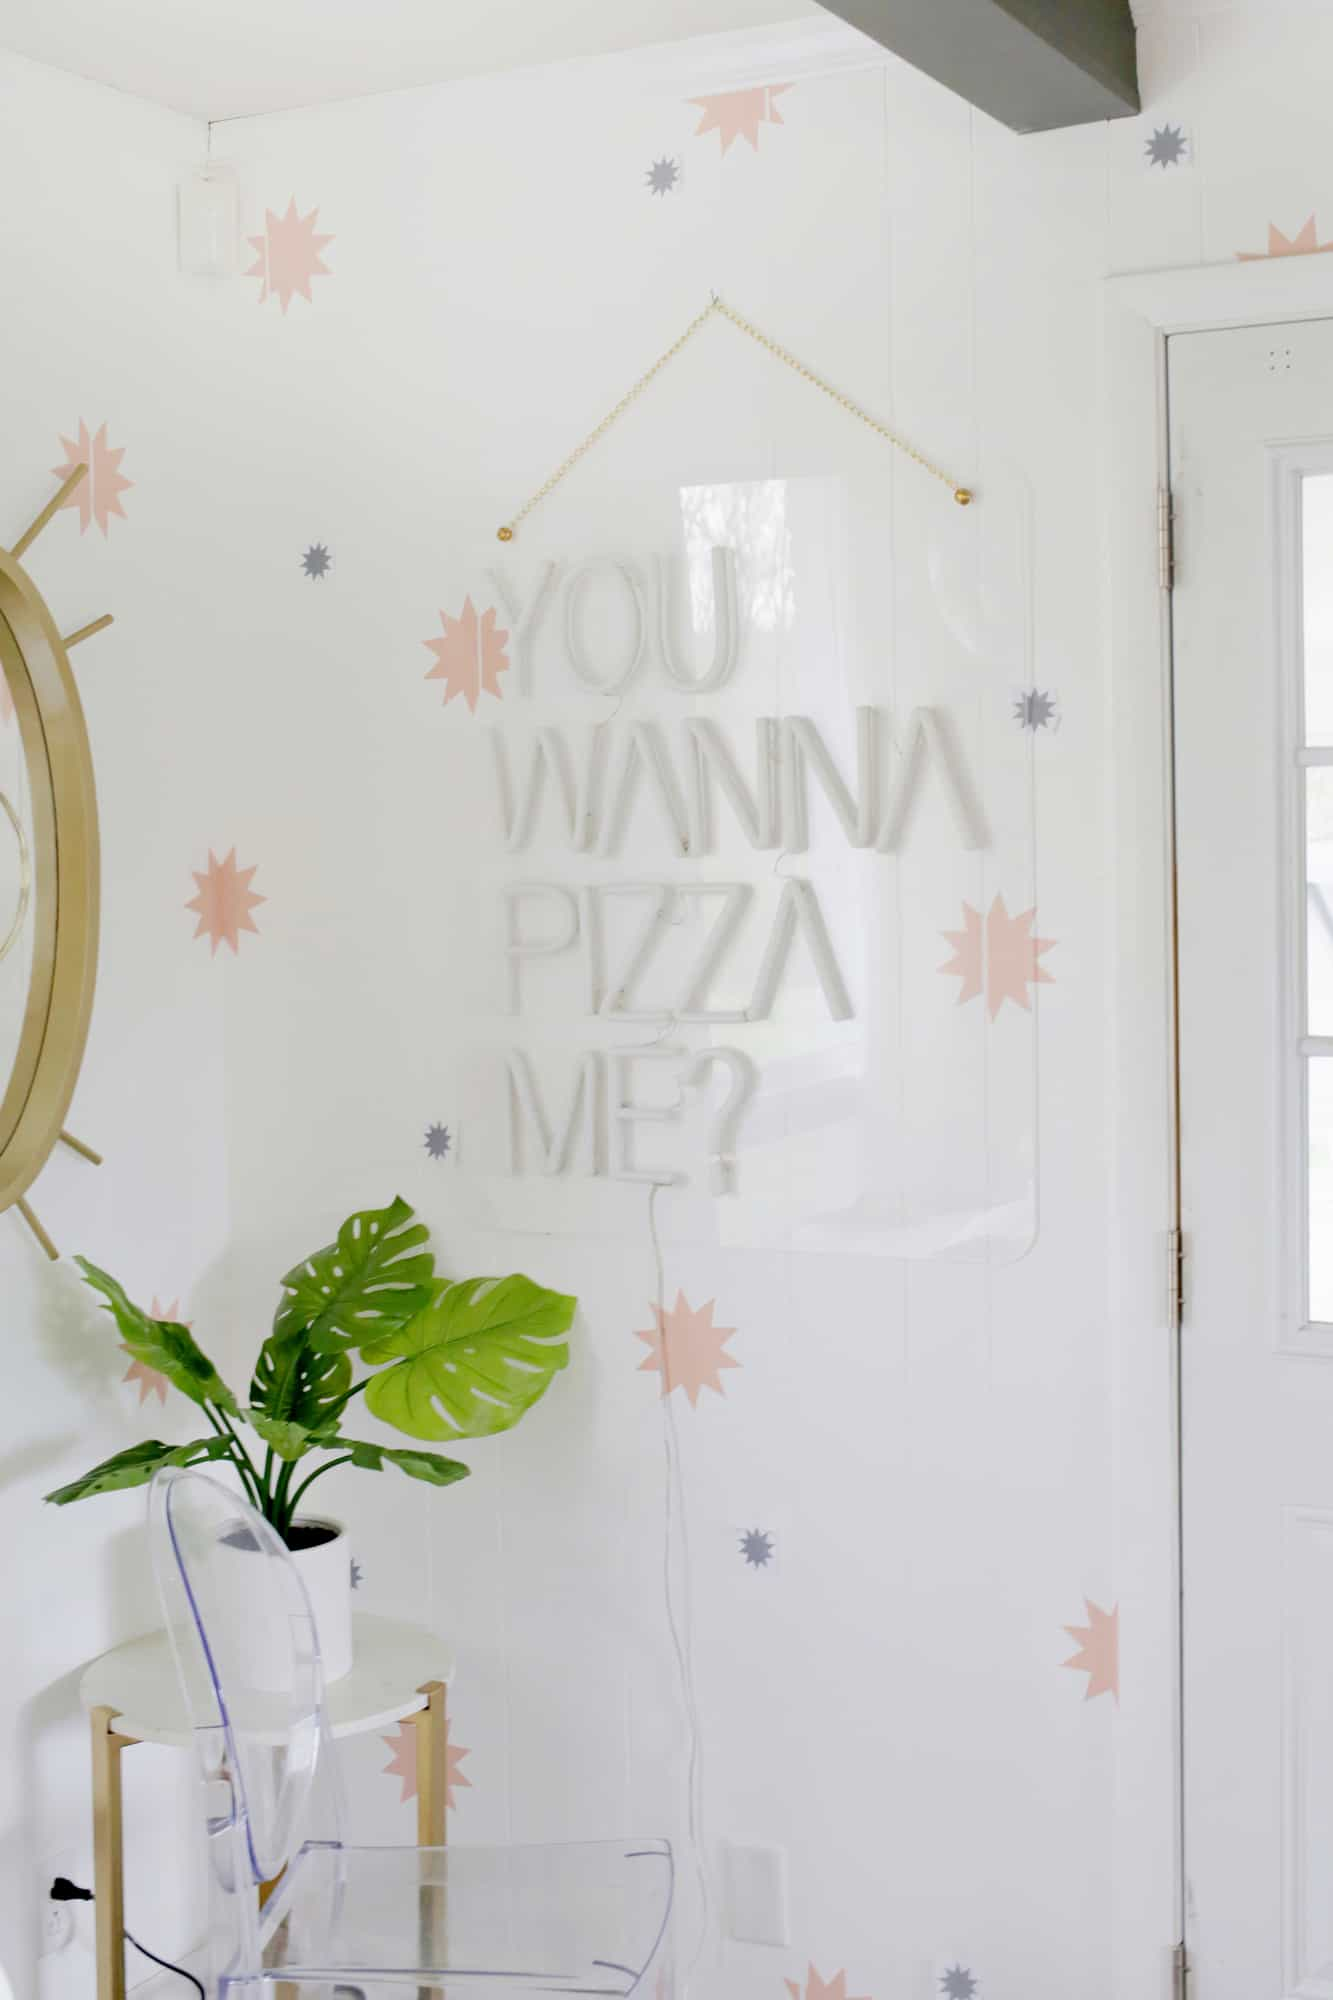 Removable Star Wallpaper Diy A Beautiful Mess